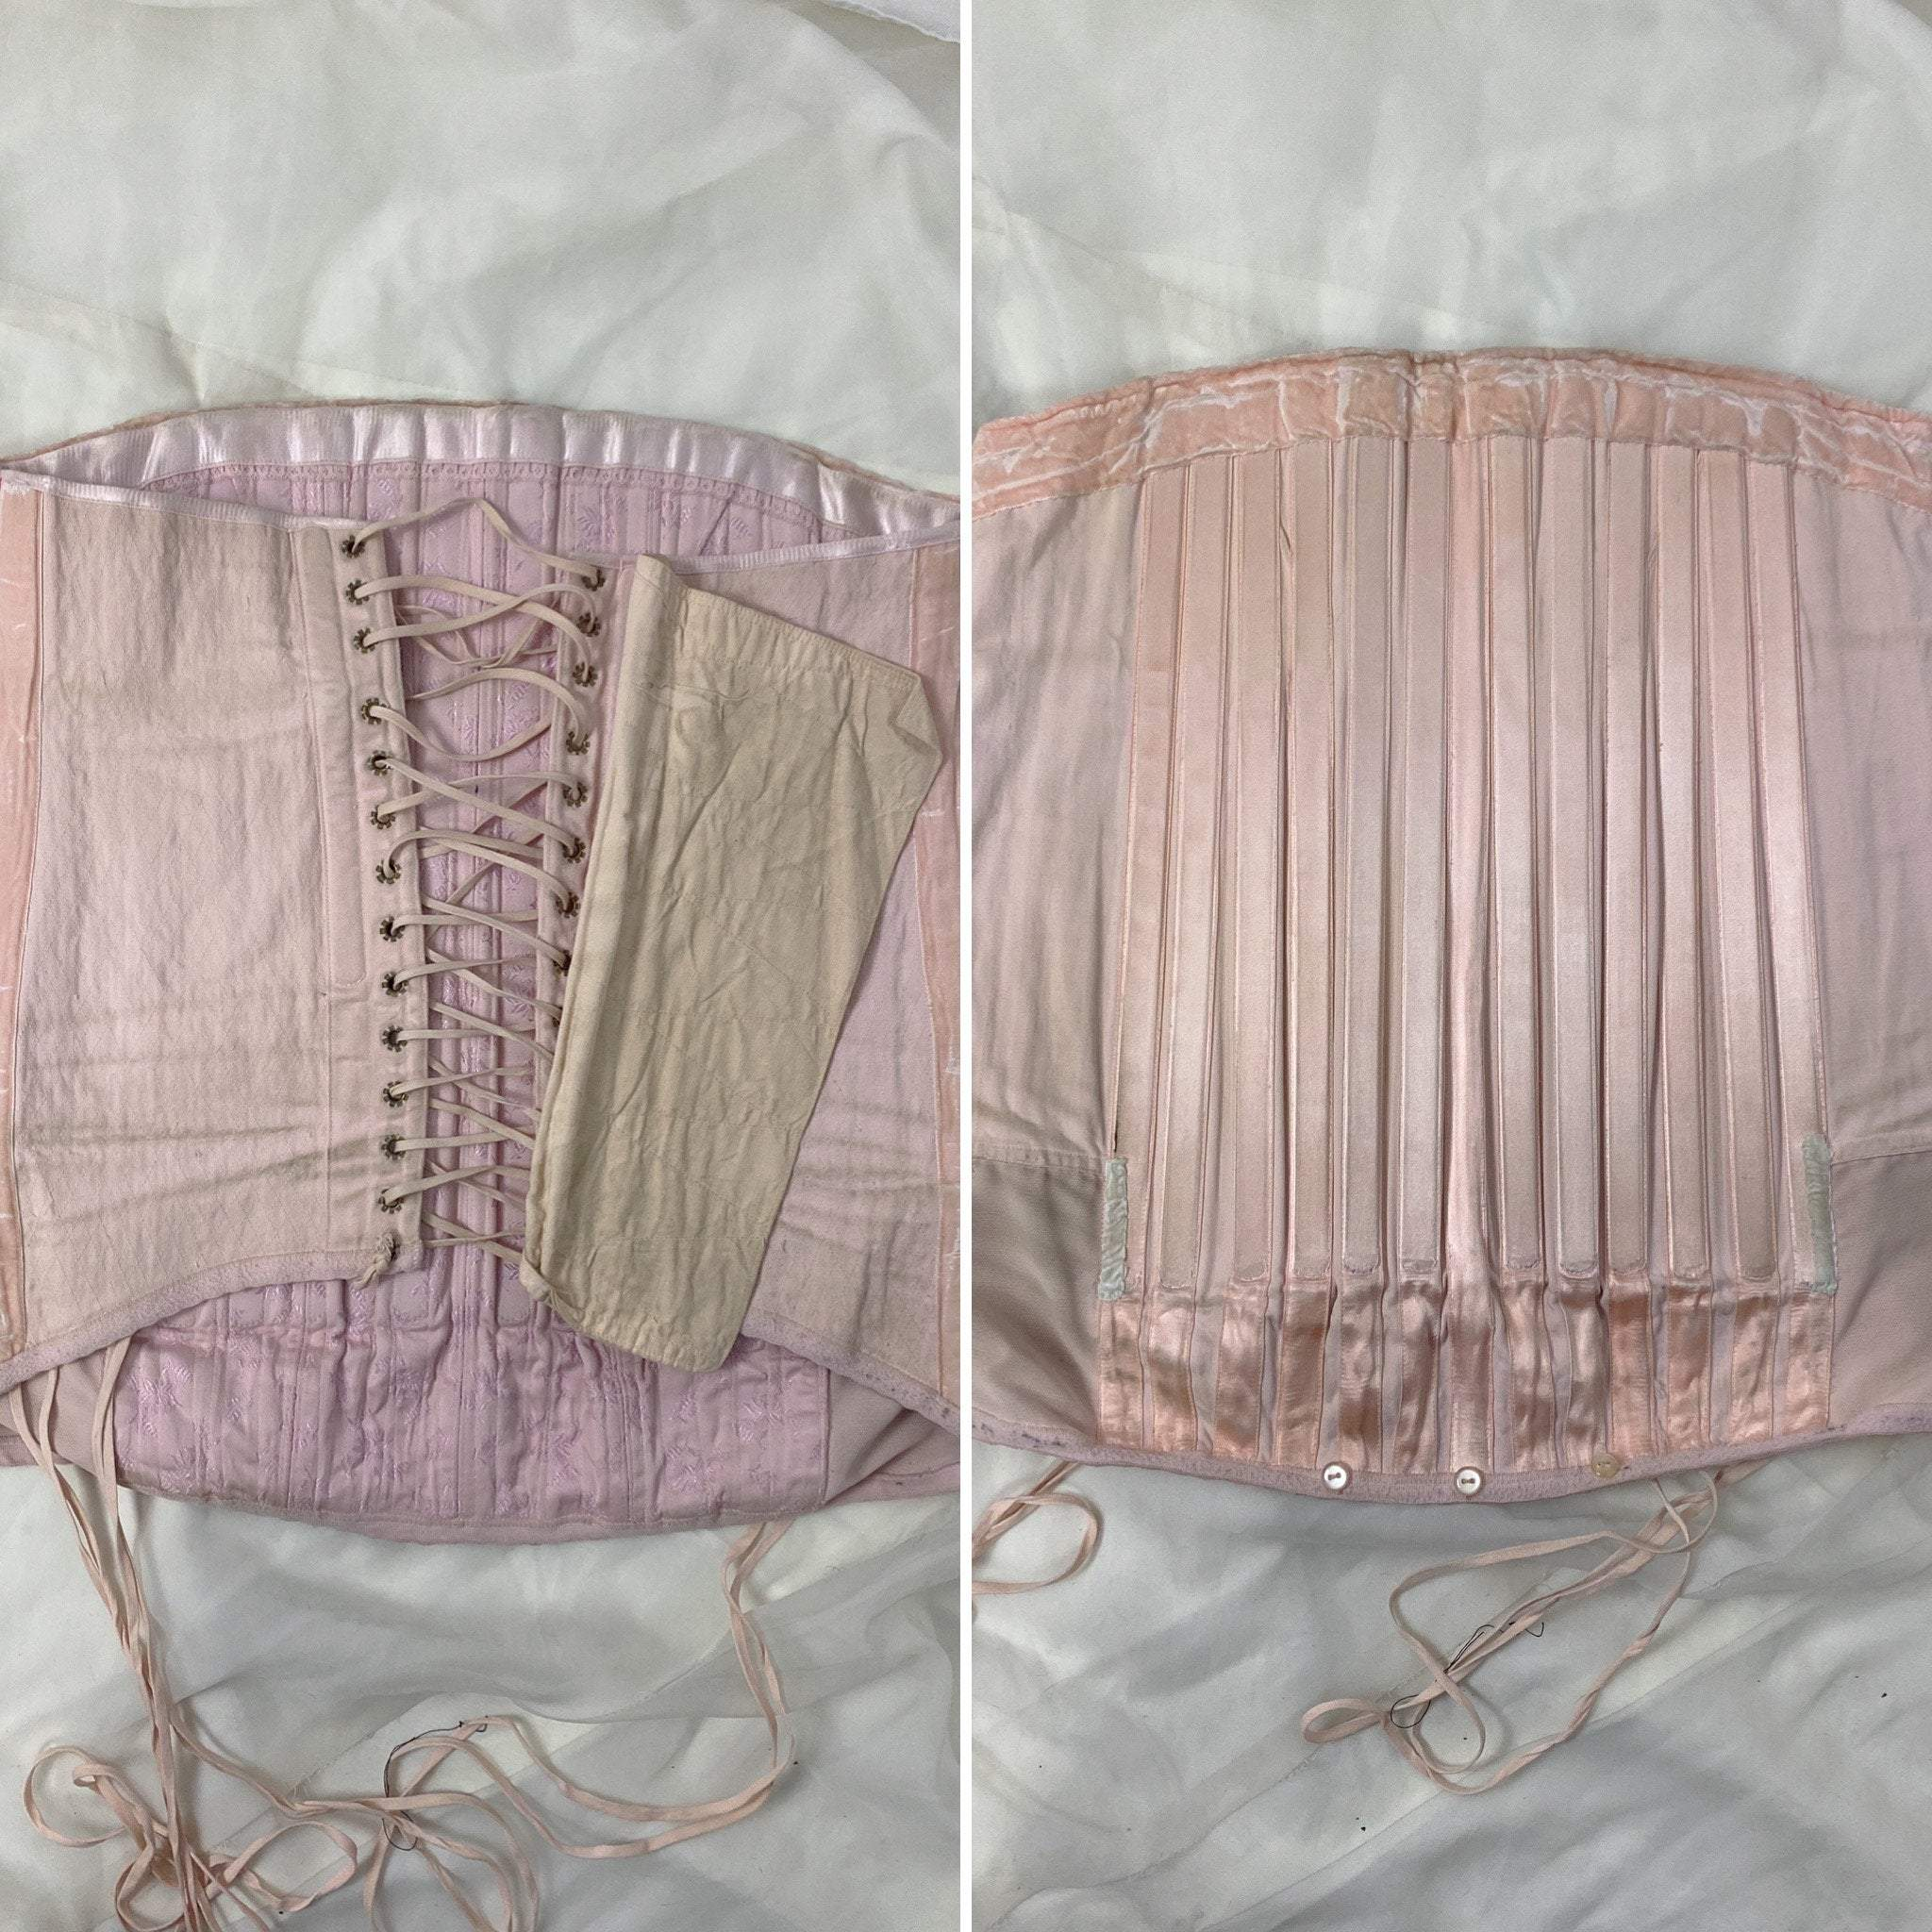 Vintage 1940's Corset Girdle | Light Pink Quilted Satin Damask with Lush Velvet Lining | Size LG, XLG | Made in France - Daggers & Dames